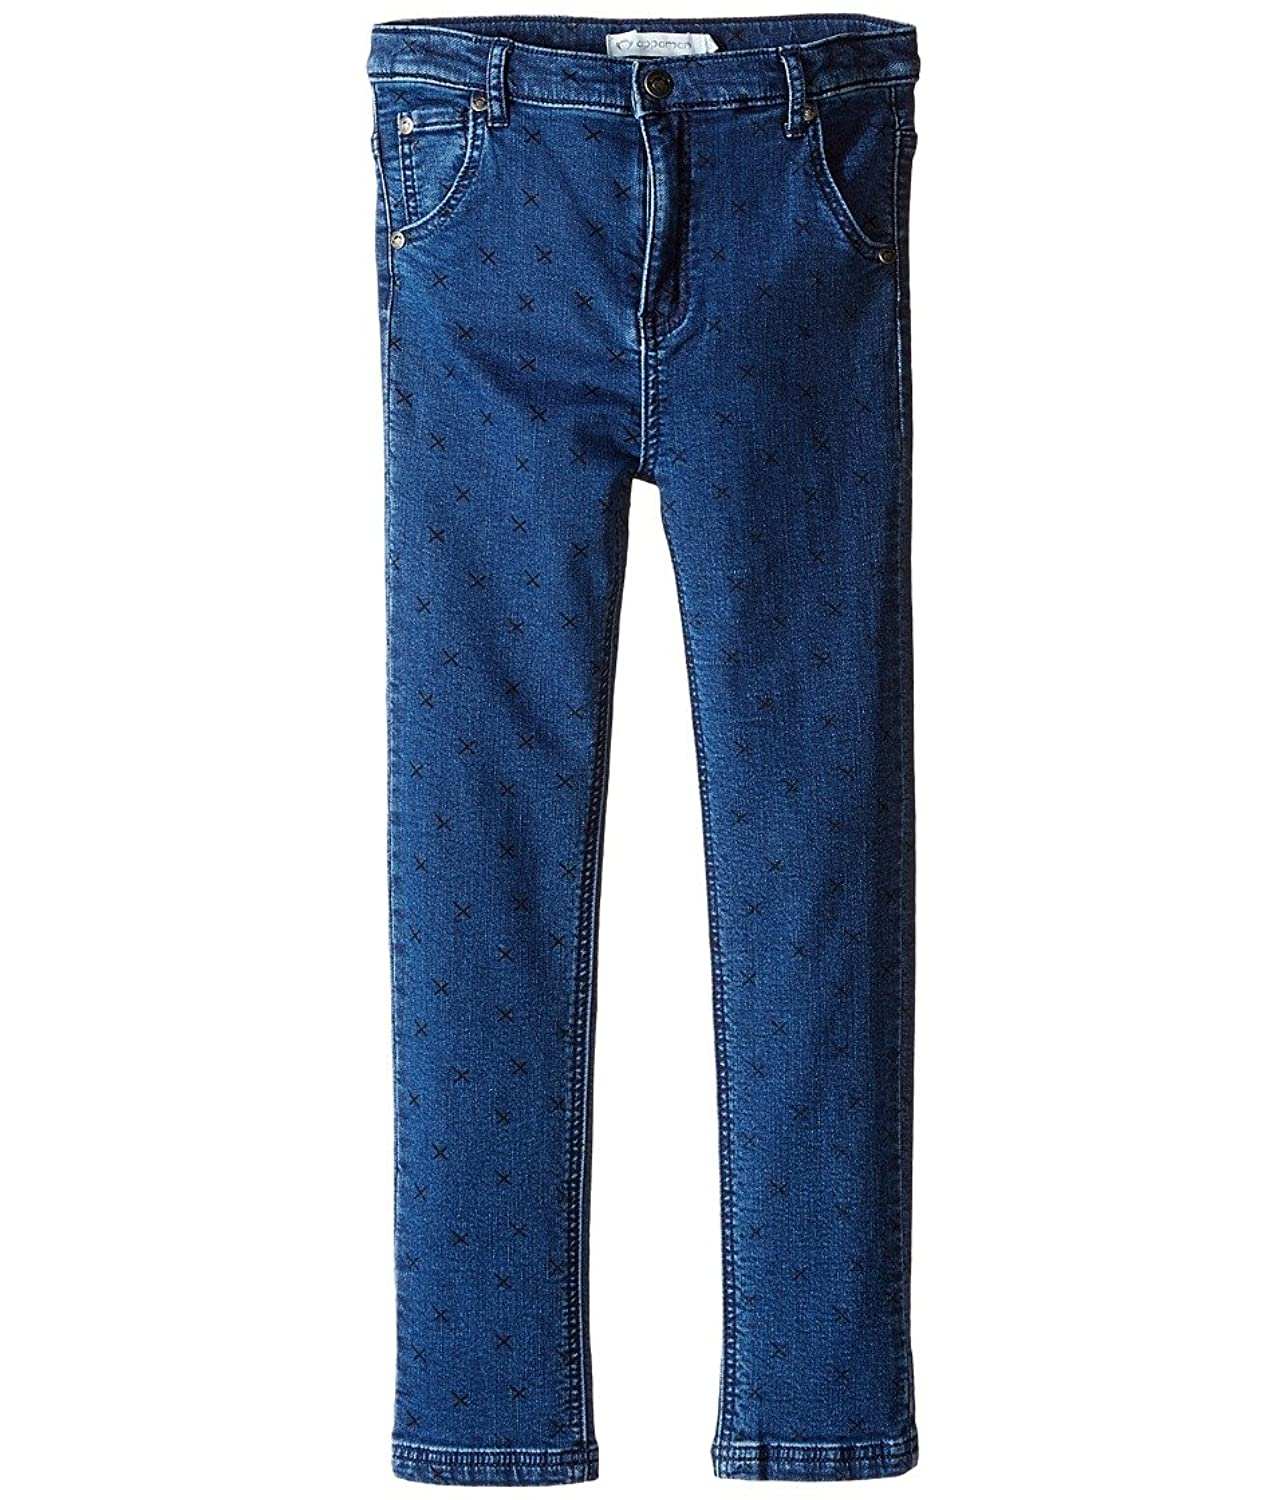 Appaman Kids Girl's Finley Knit Denim Pants (Toddler/Little Kids/Big Kids) Medium Blue Jeans Toddler